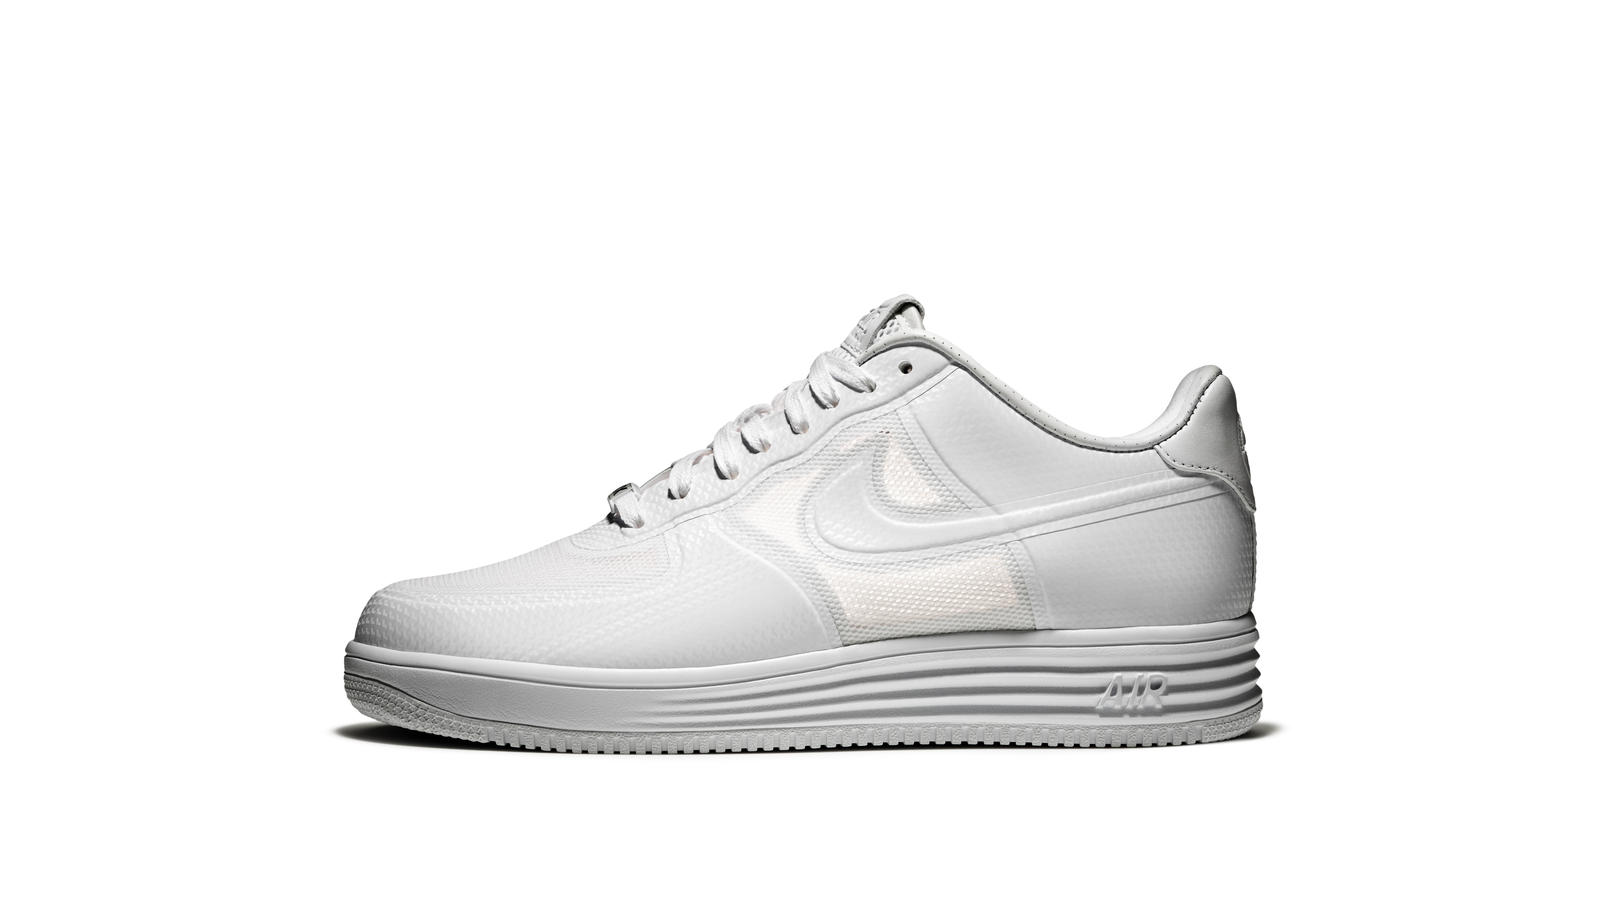 regard détaillé d8578 d0990 From History To the Future of Force: The Nike Lunar Force 1 ...